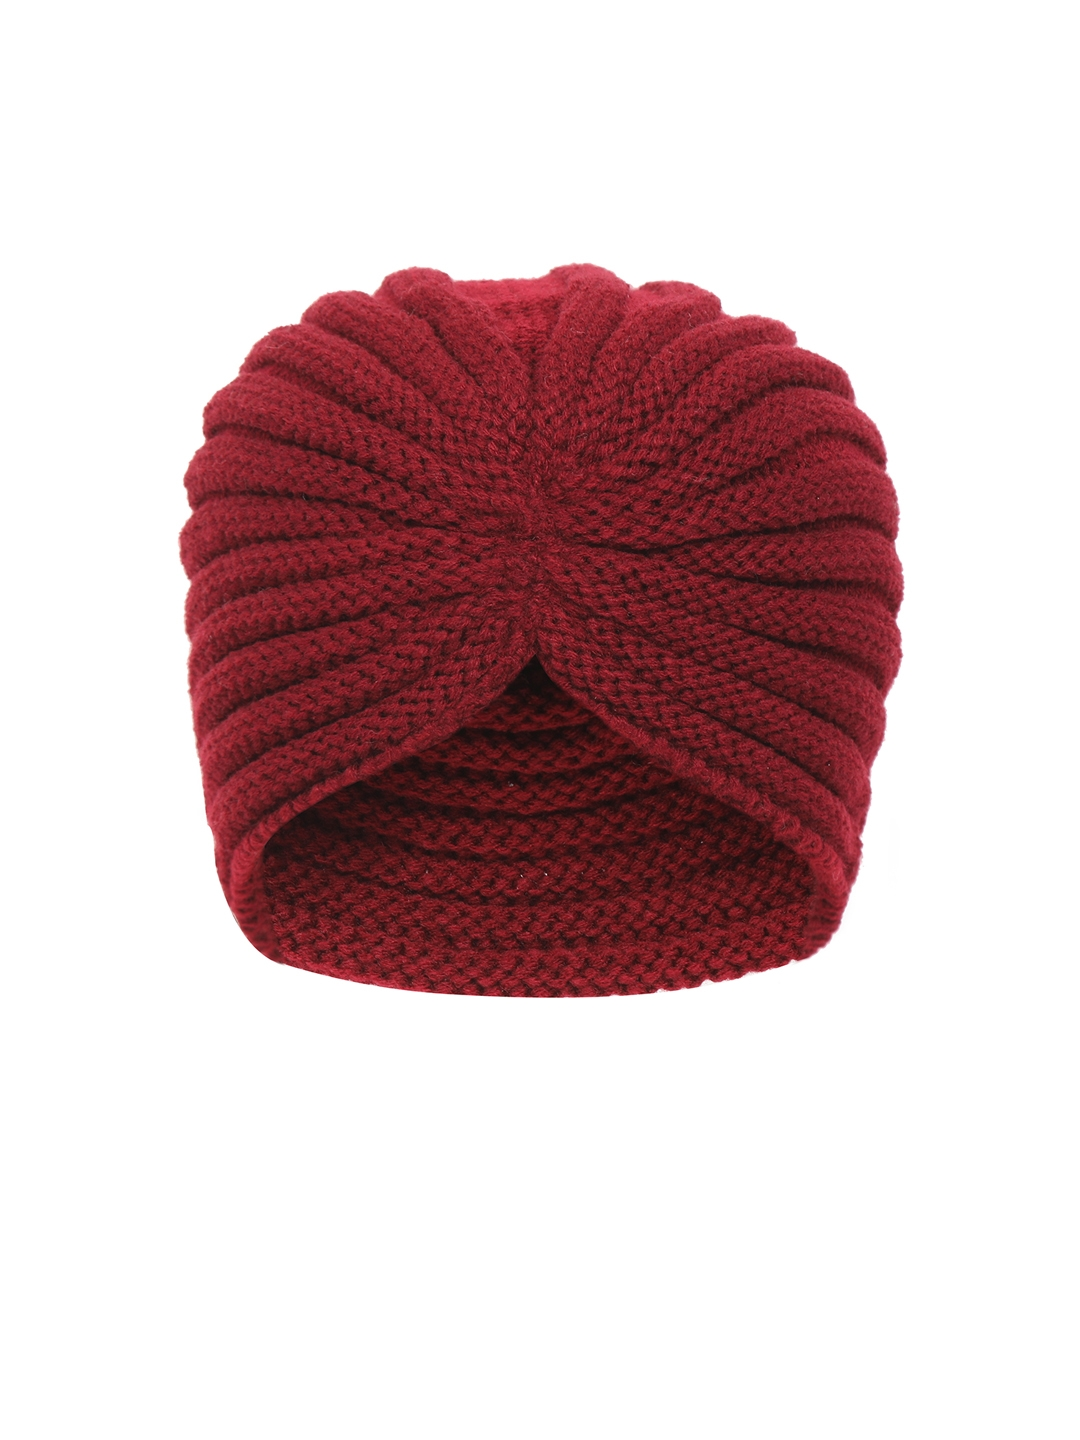 FabSeasons Women Maroon Patterned Skull Cap